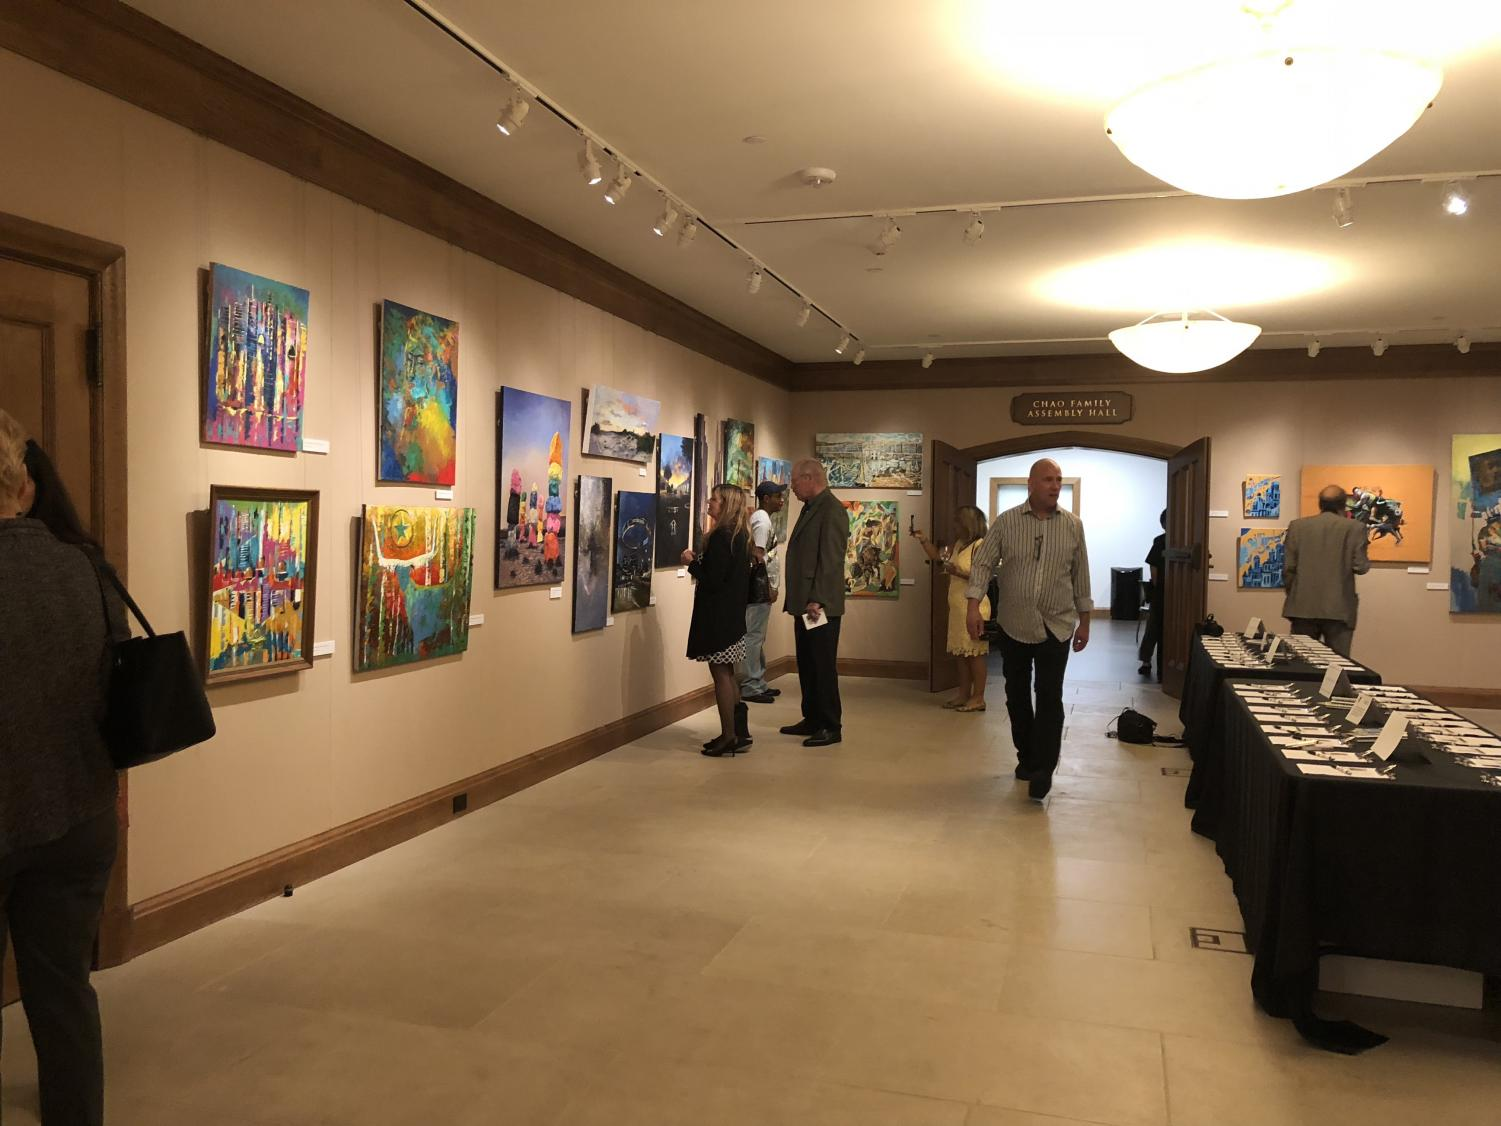 On Sept. 28, St. John's hosted the YMCA art auction featuring work from refugees. The auction raised $30,000, which was split between YMCA and the artists.